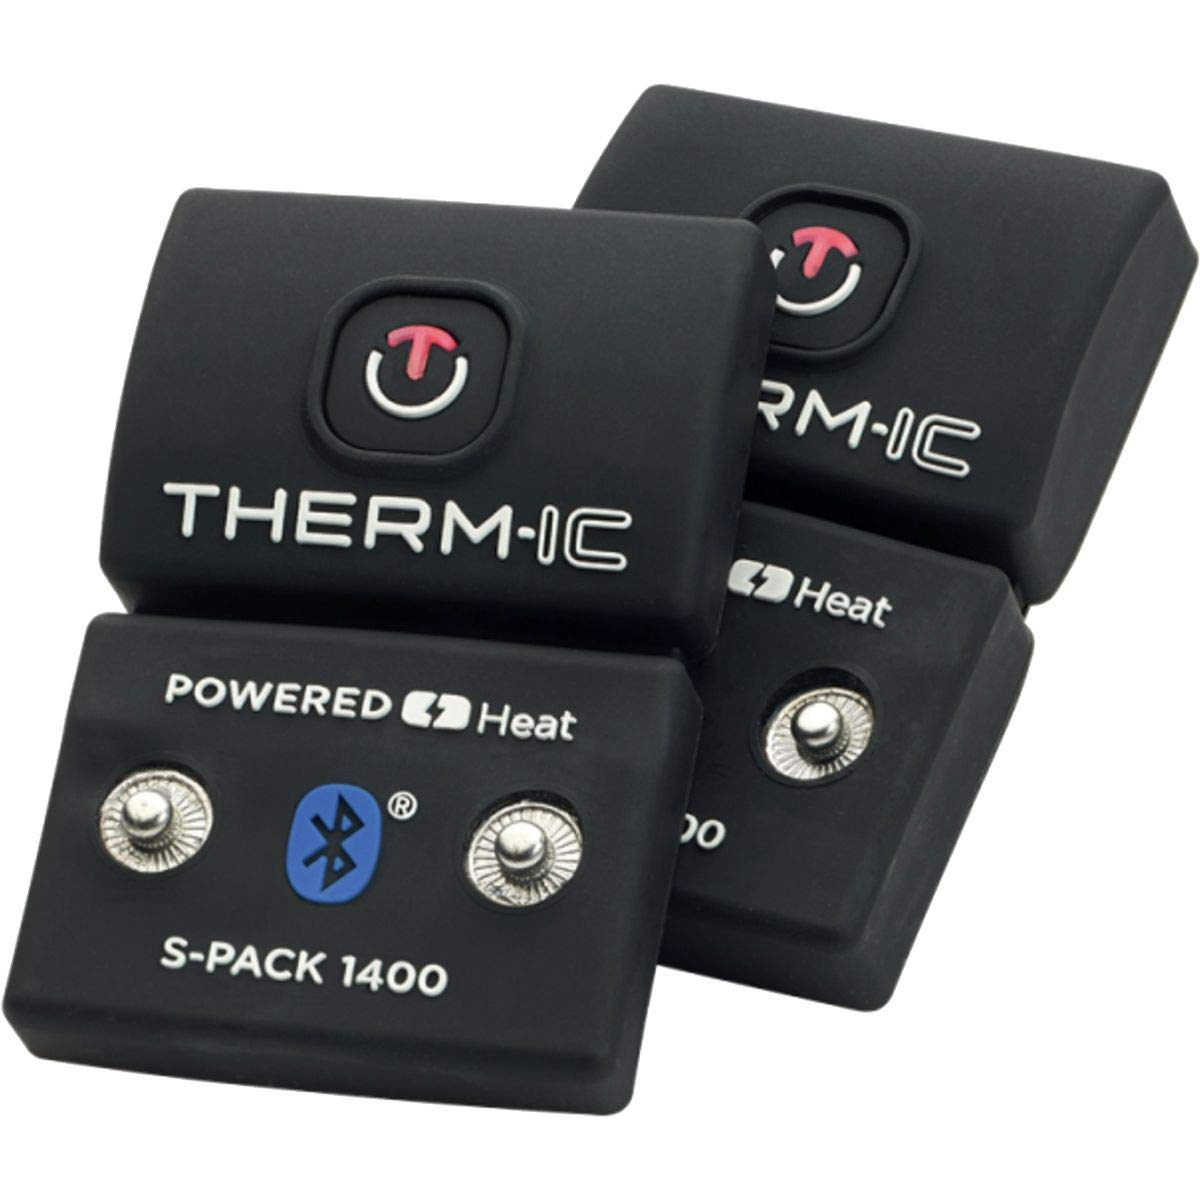 Therm-ic PowerSock S-Pack 1400 Bluetooth One Color, One Size